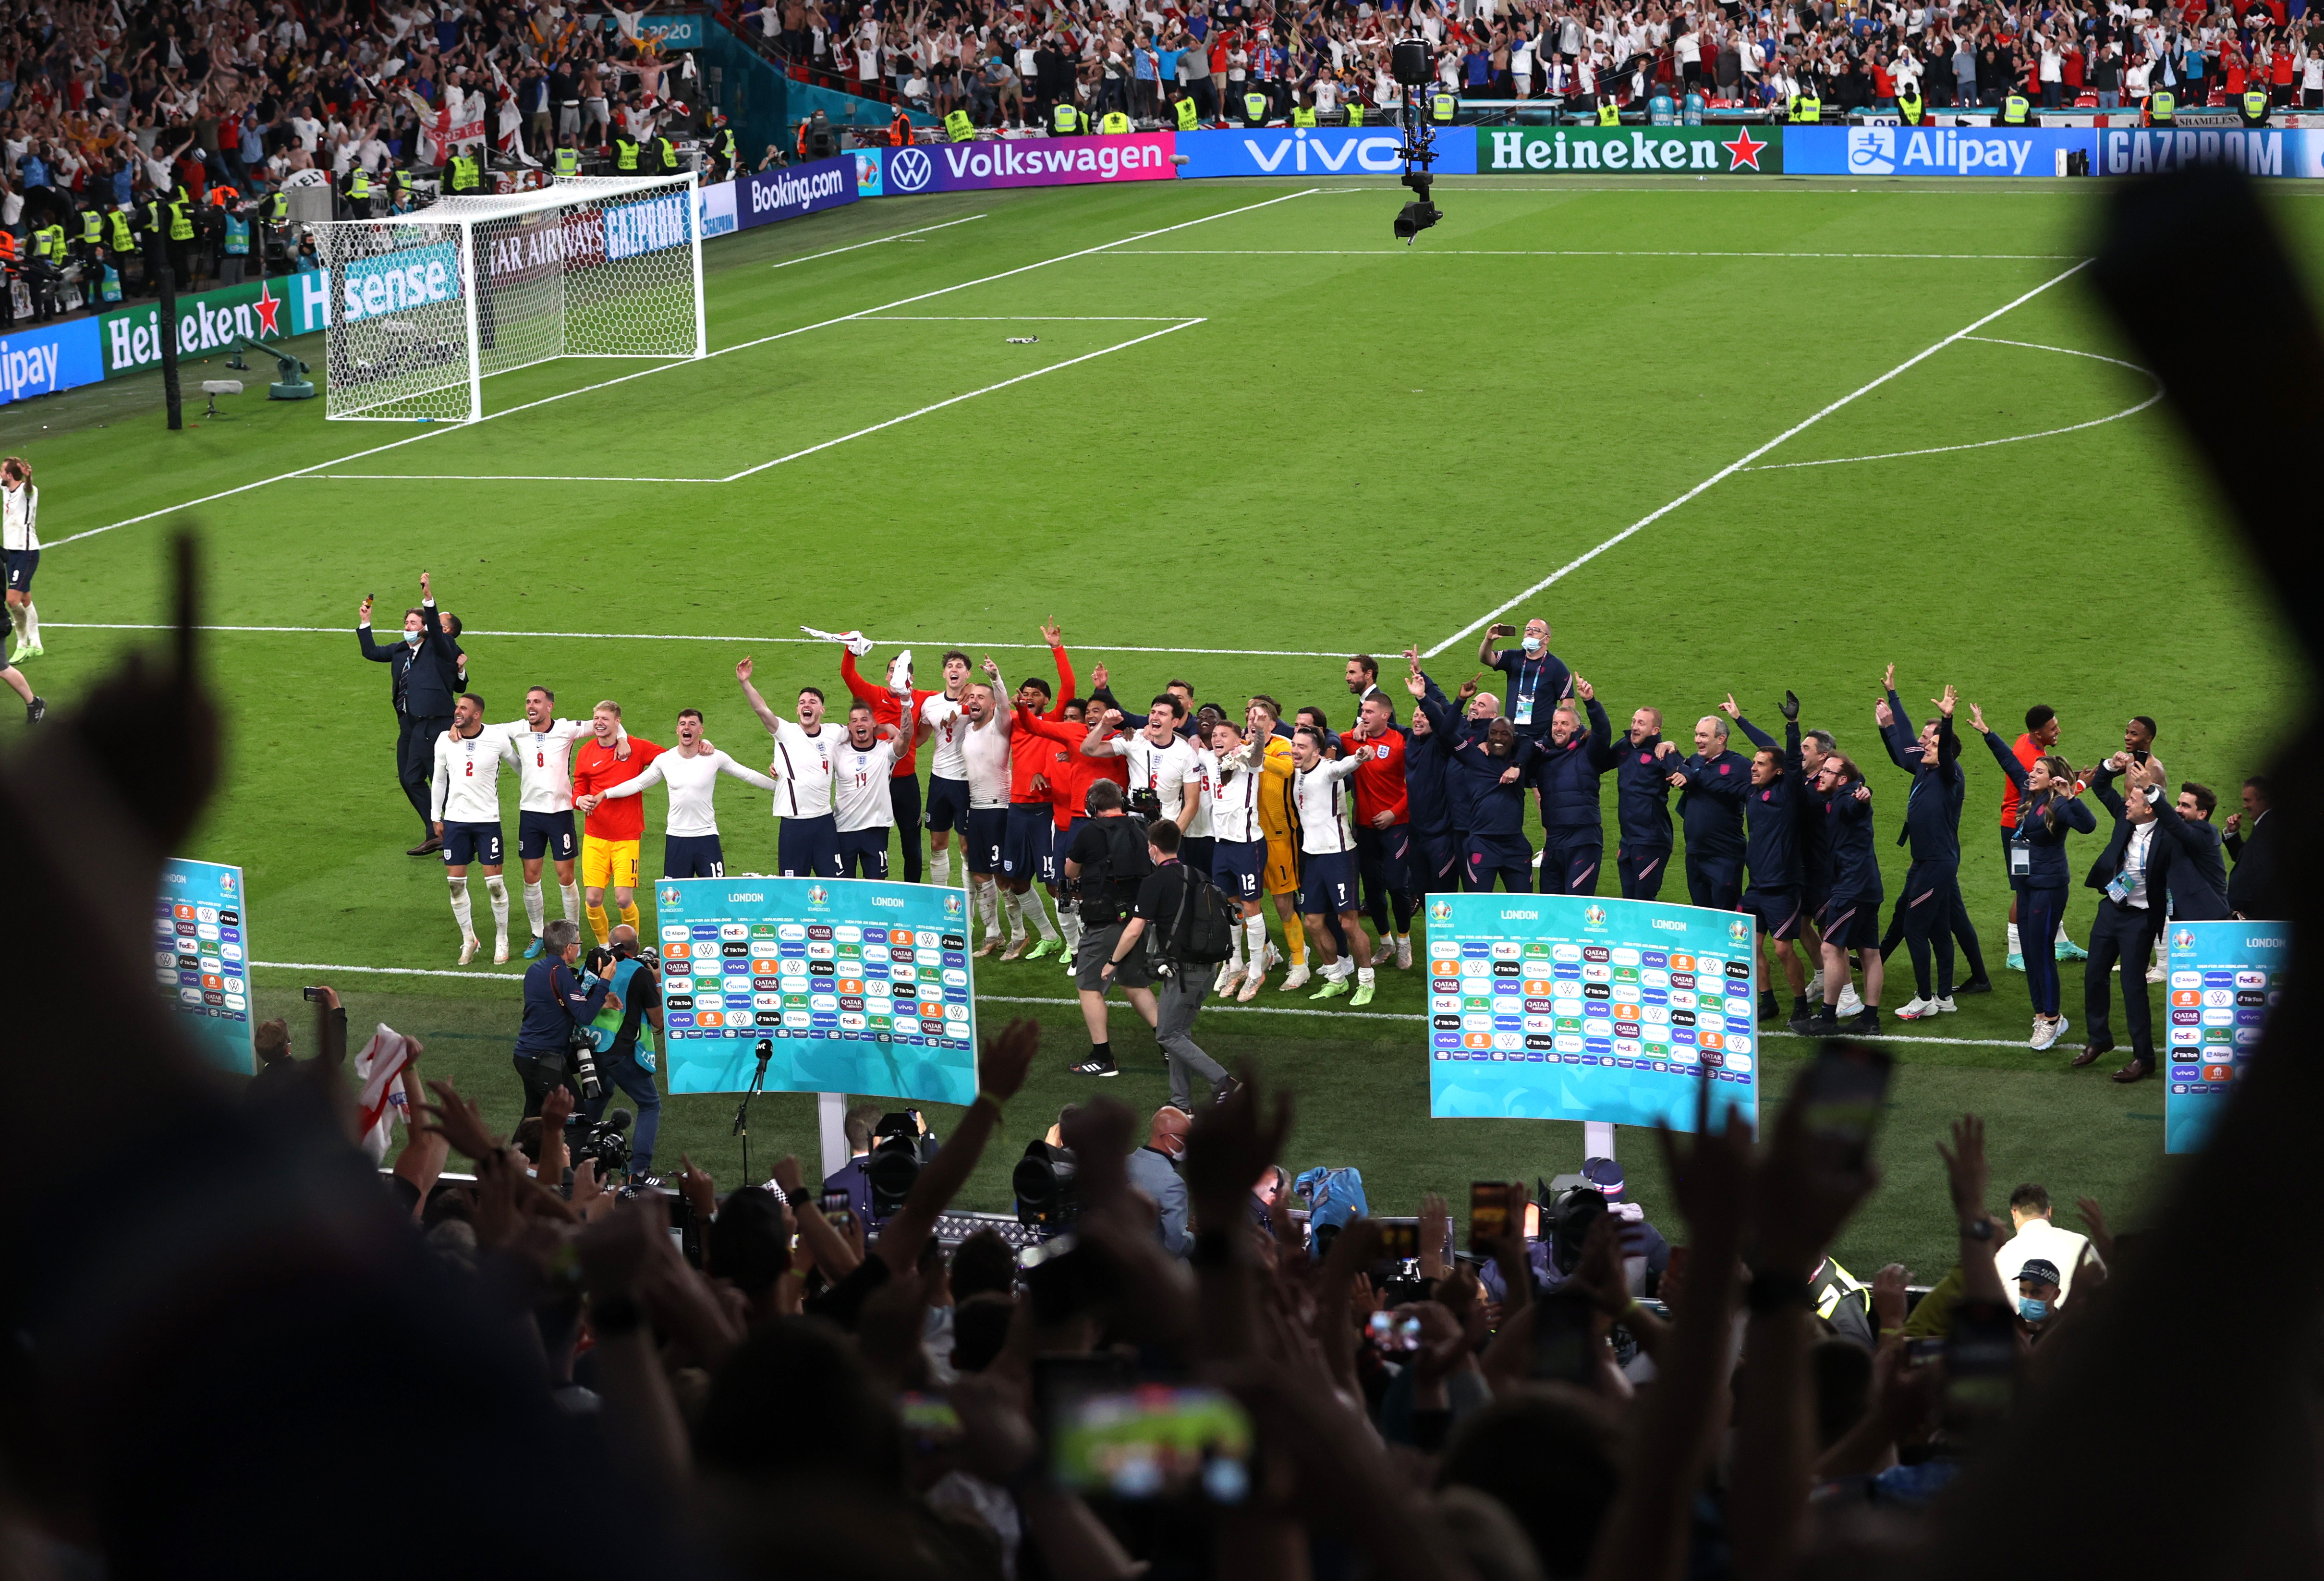 Soccer Football - Euro 2020 - Semi Final - England v Denmark - Wembley Stadium, London, Britain - July 7, 2021 England players celebrate after the match Pool via REUTERS/Catherine Ivill